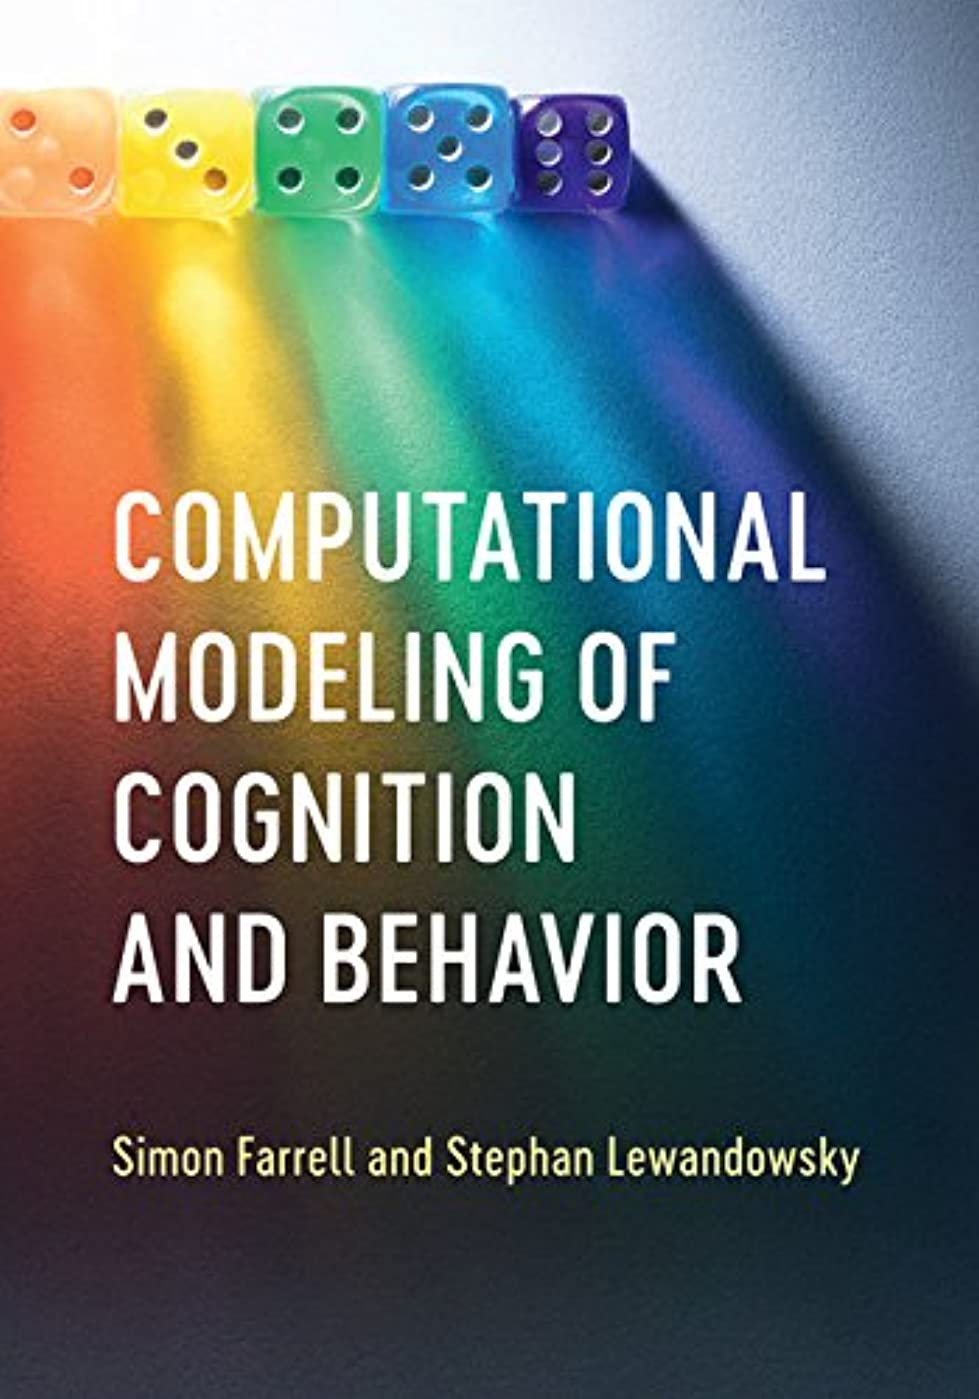 勉強する礼拝真似るComputational Modeling of Cognition and Behavior (English Edition)